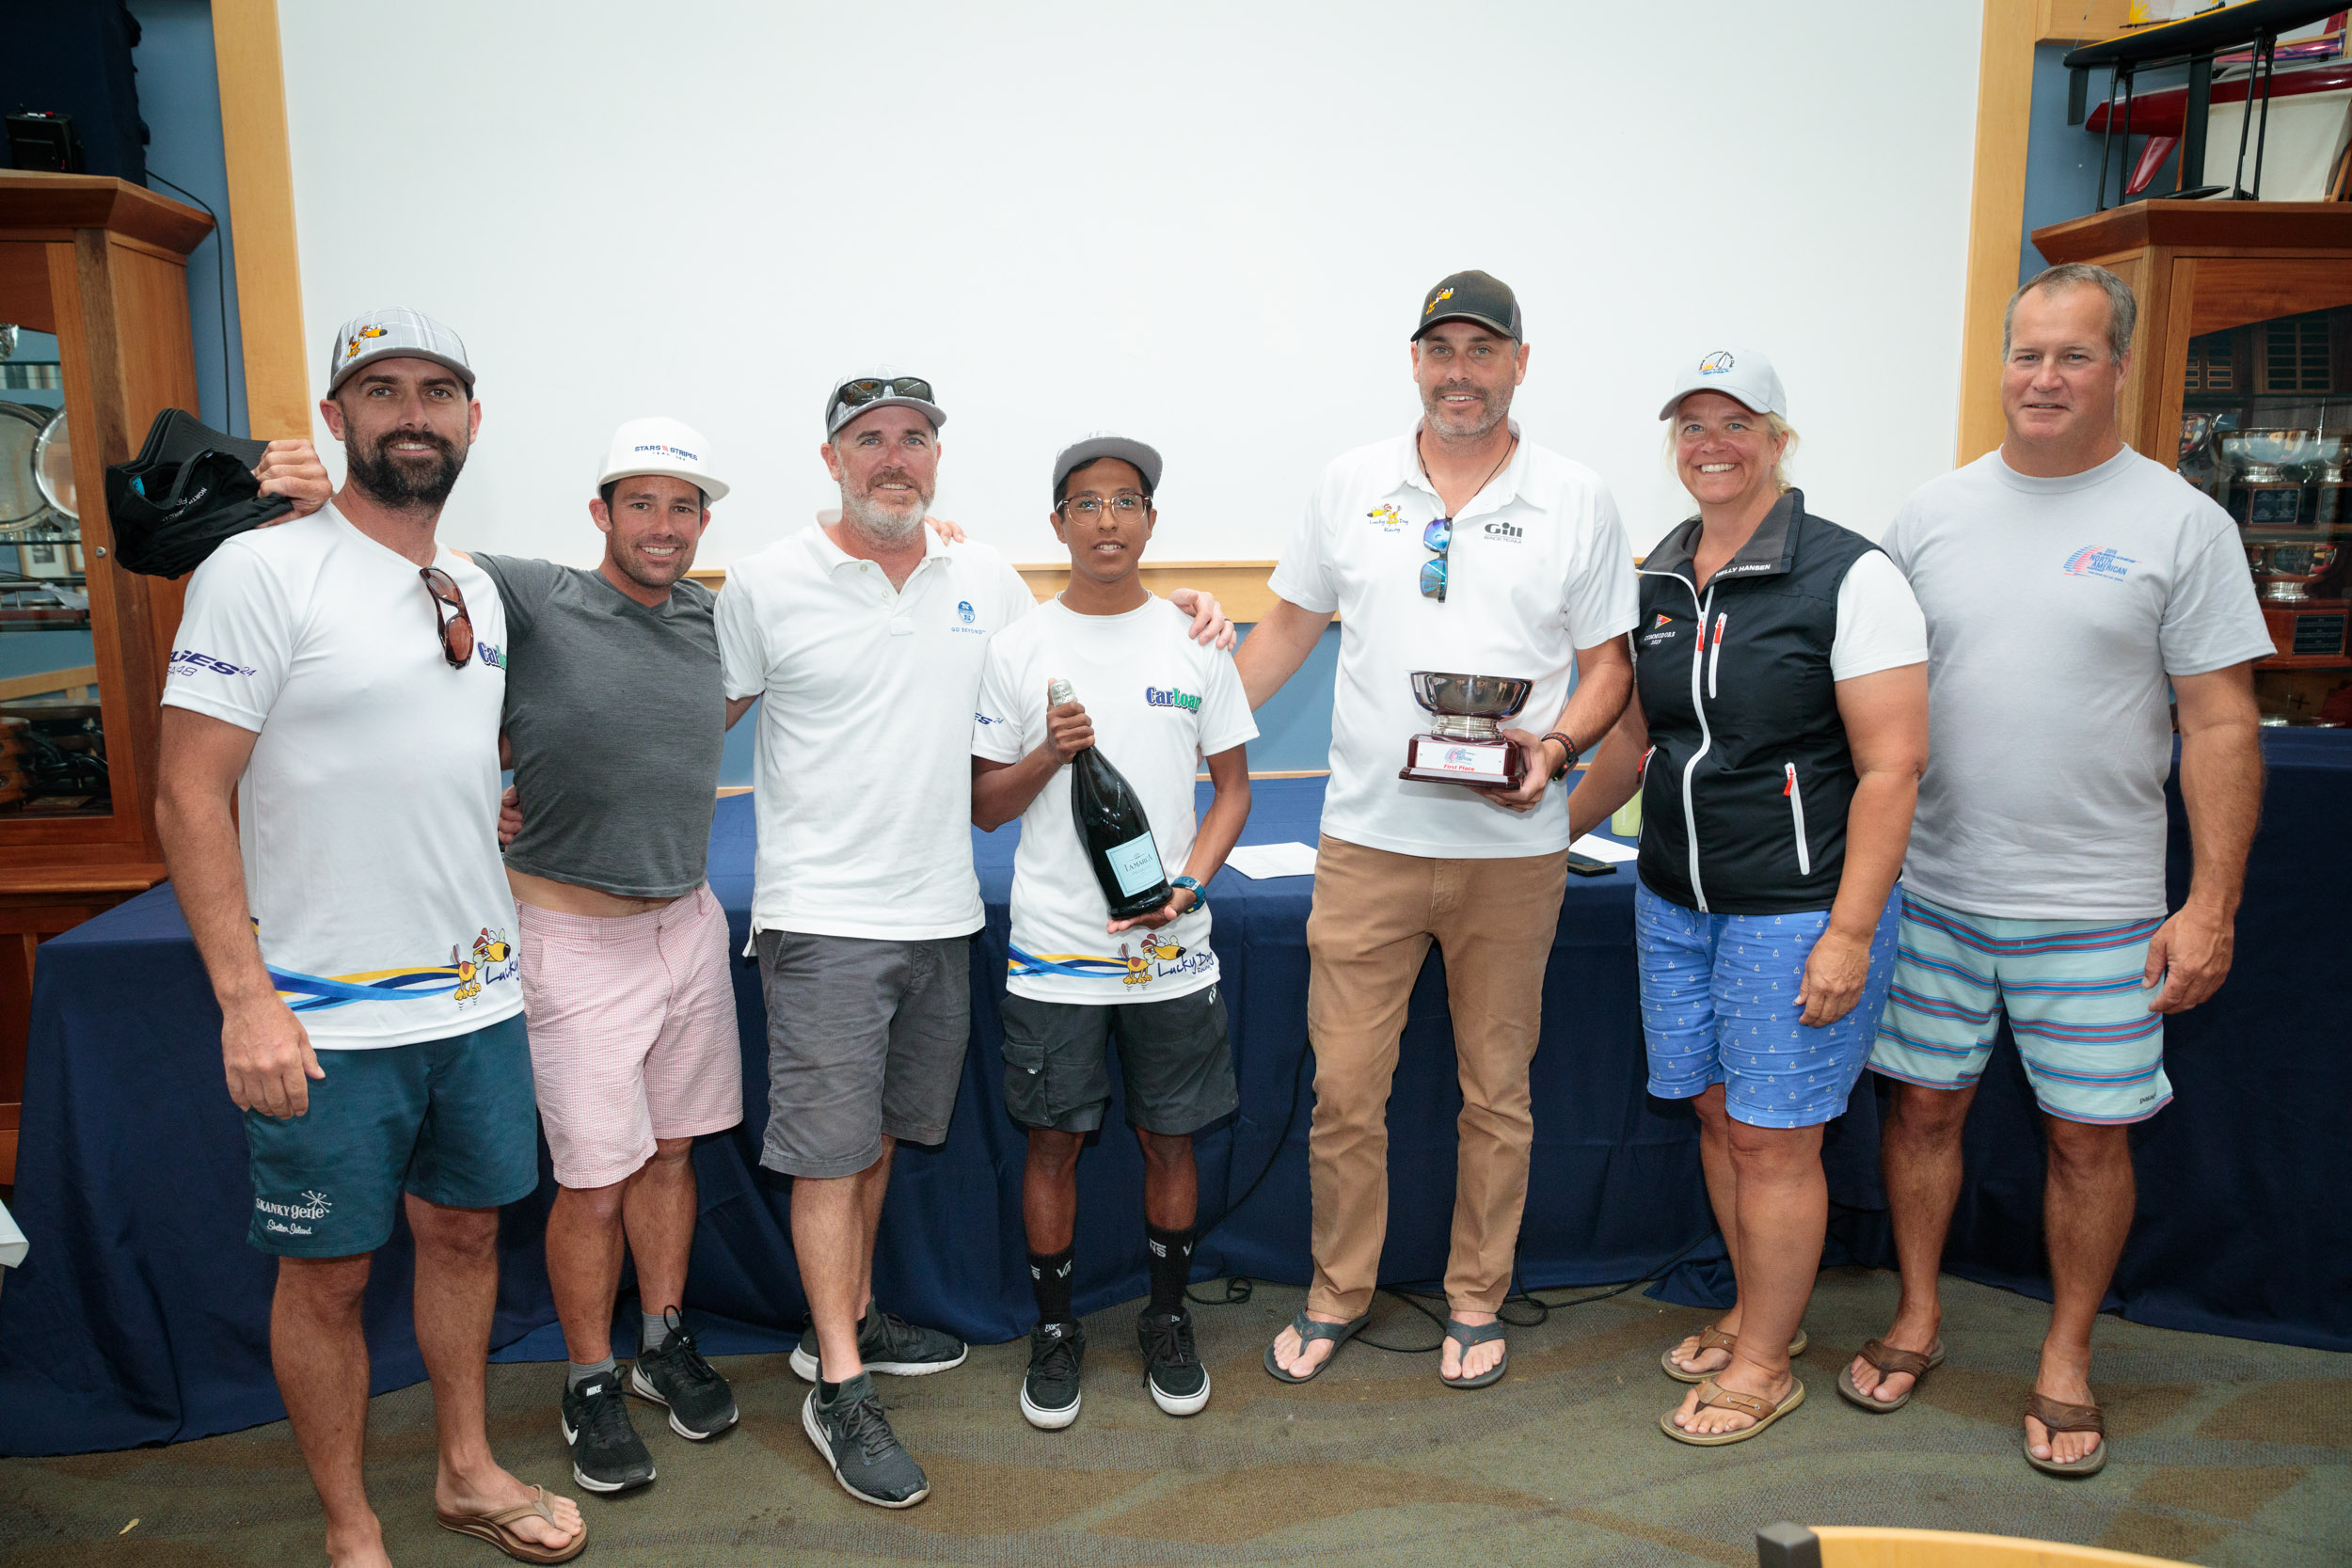 1st Place, 2019 Melges 24 North American Champions -  Lucky Dog/Gill Race Team : Travis Weisleder, Mike Buckley, George Peet, John Bowden and Chewy Sanchez. © Bill Crawford - Harbor Pictures Company